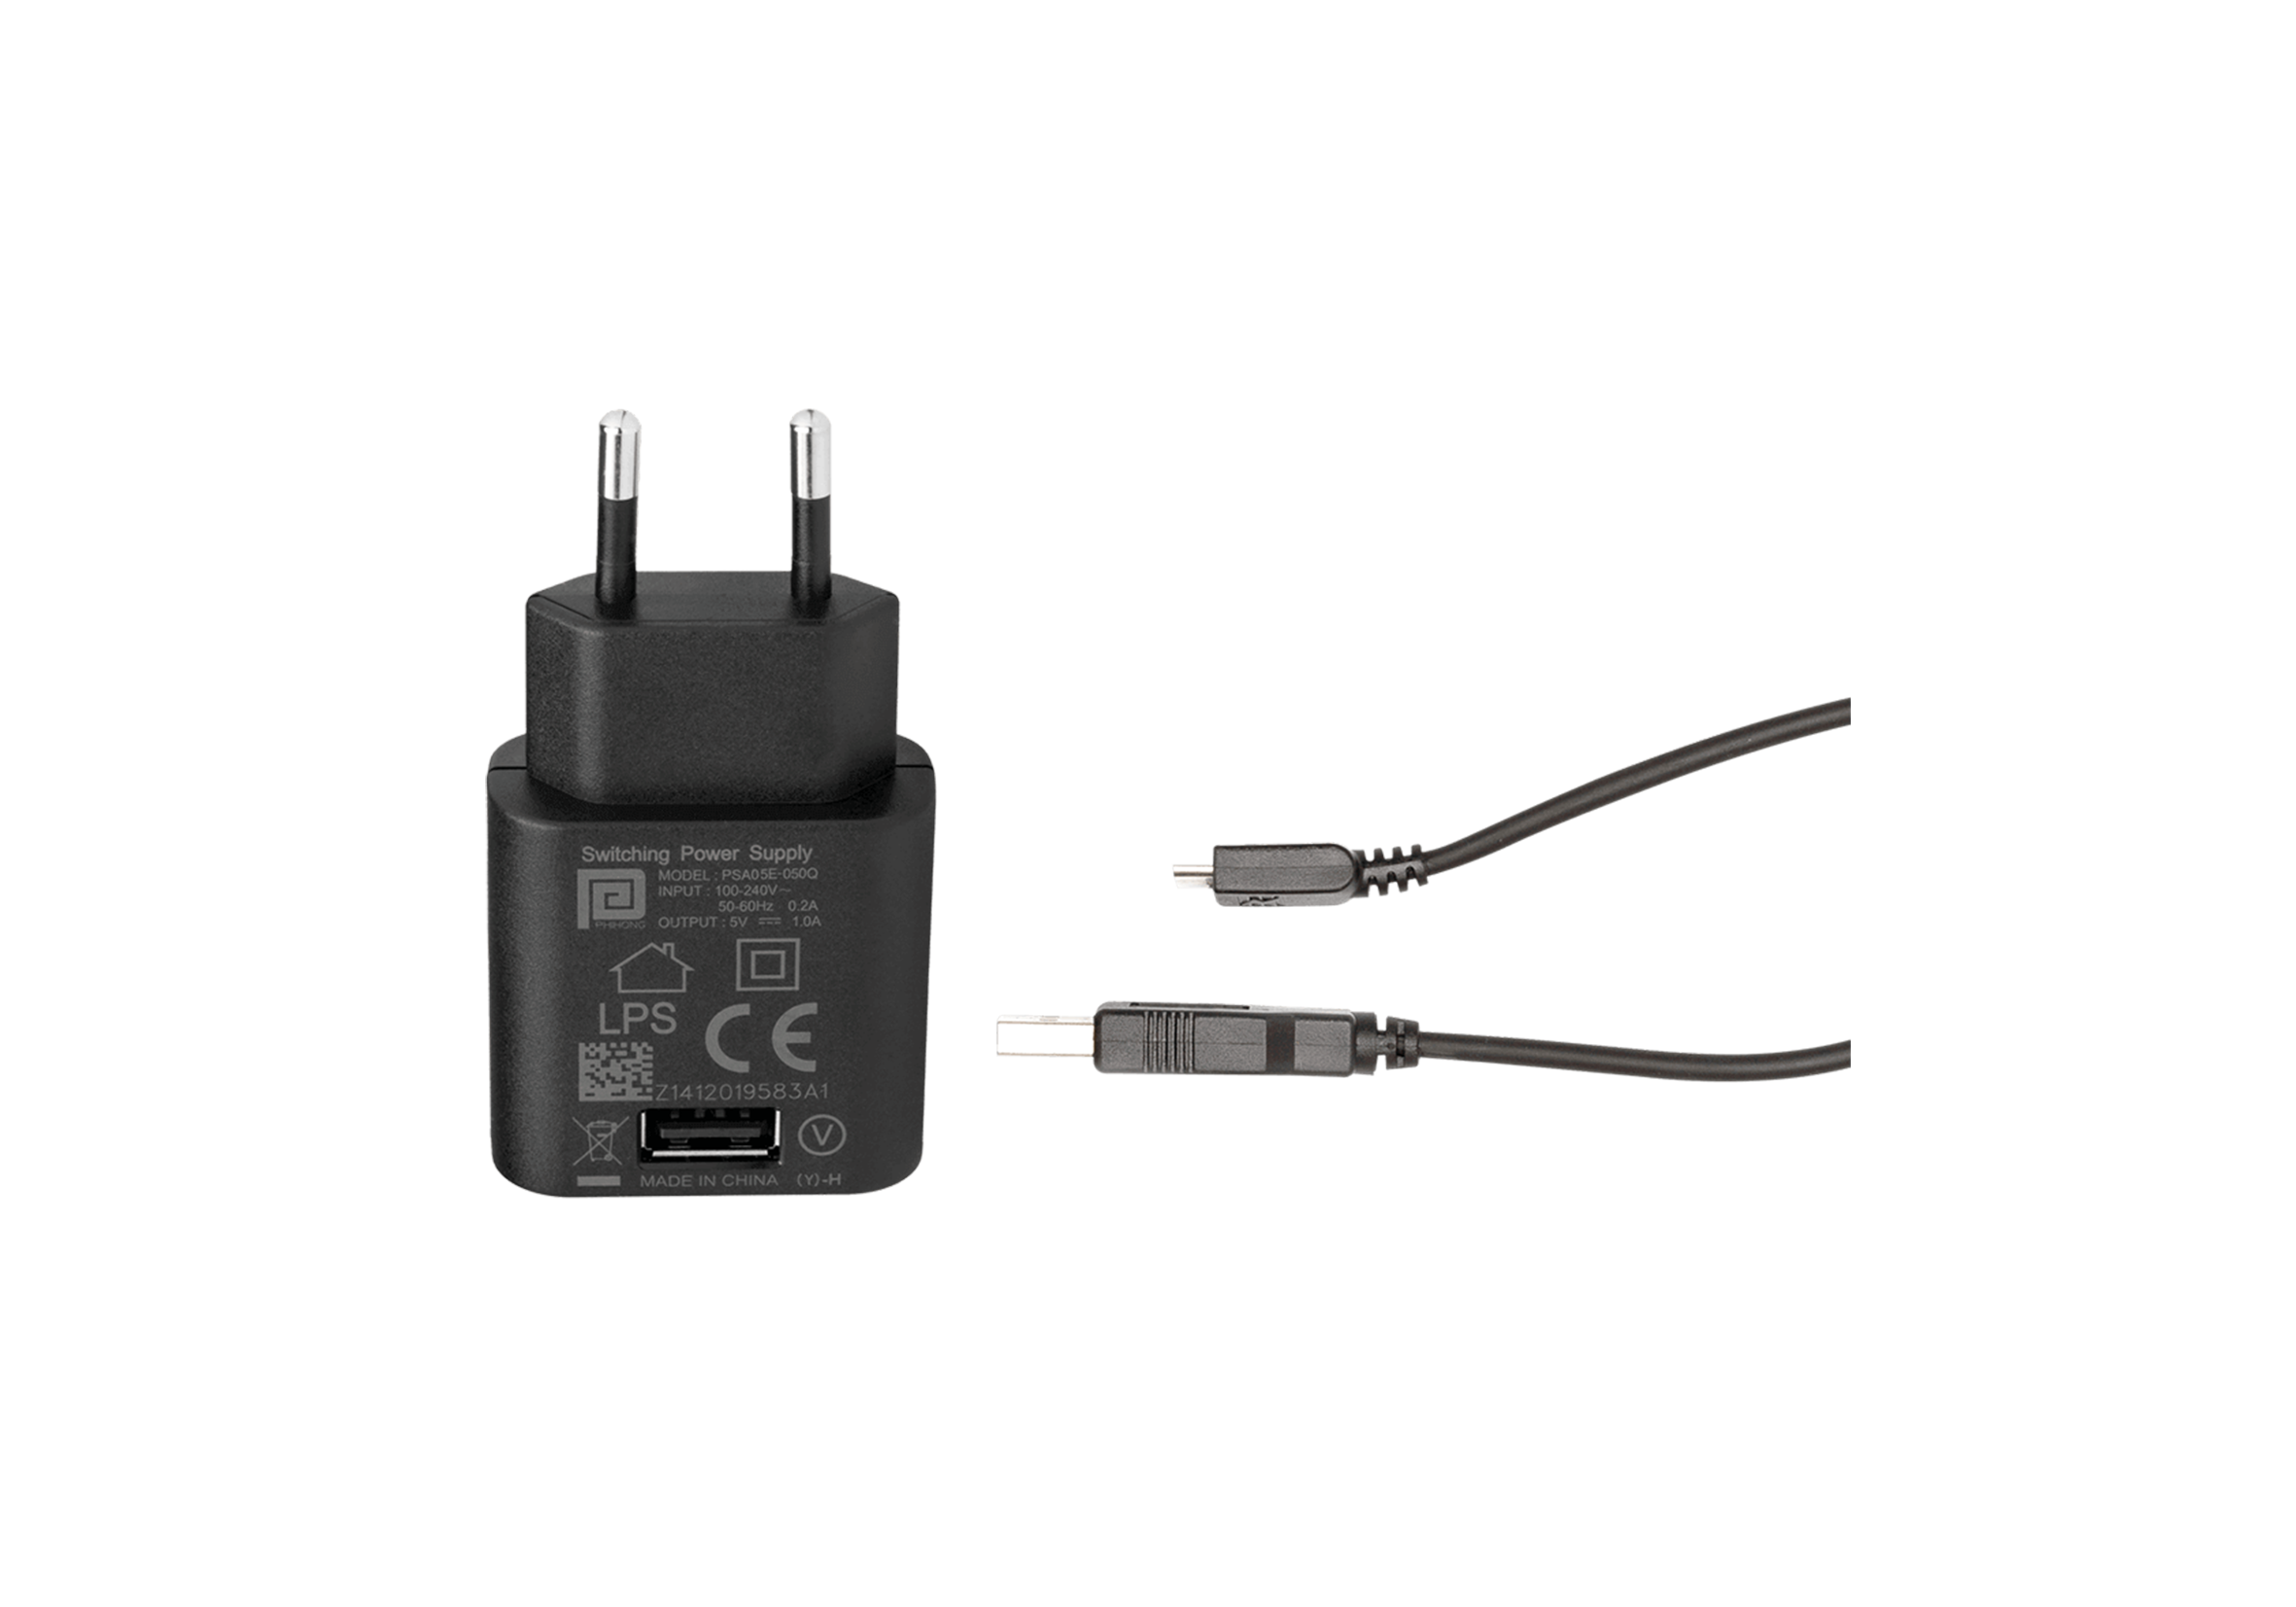 USB Power Supply and Adapter Cable